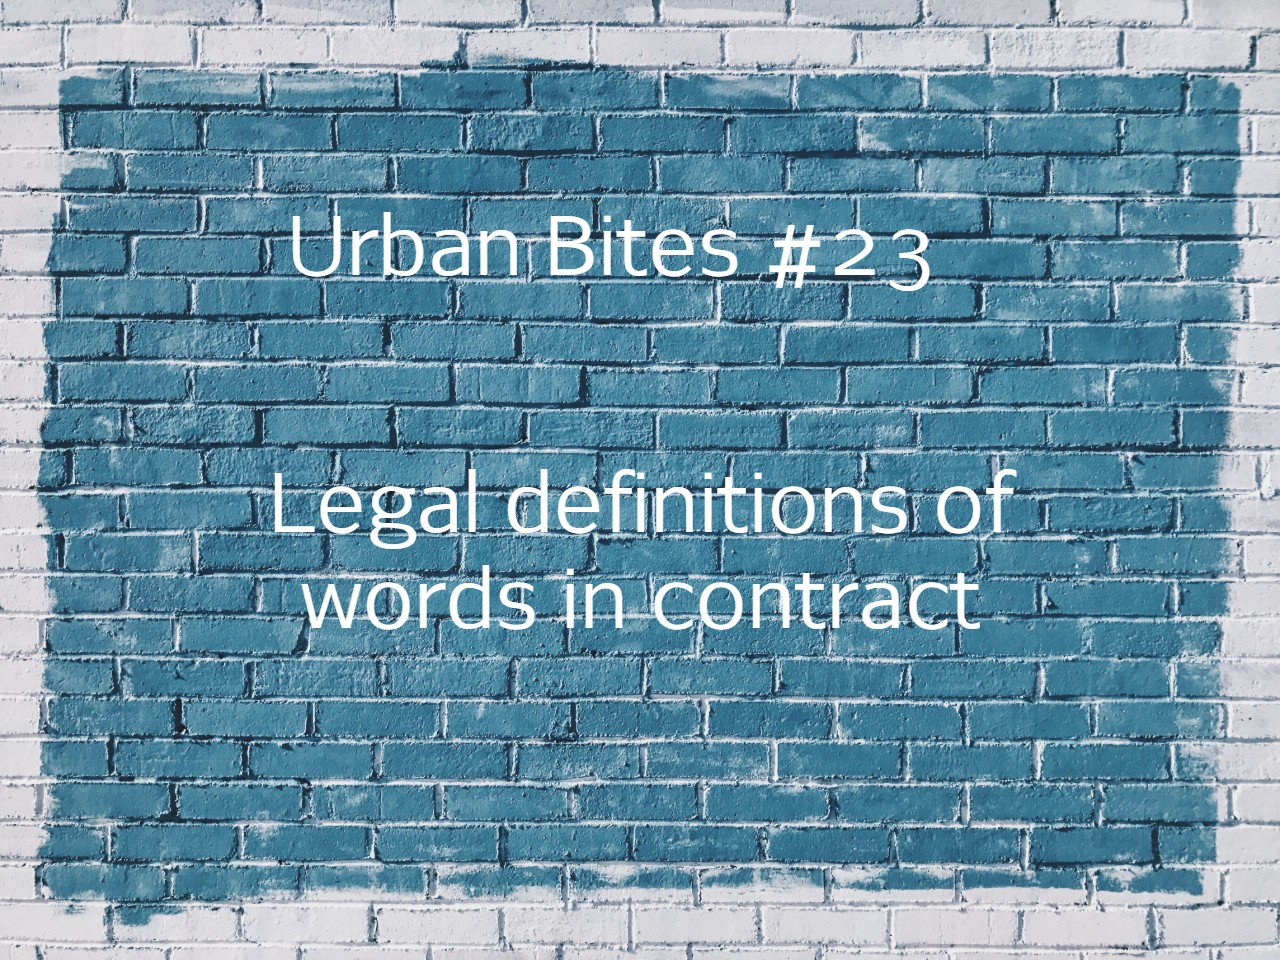 Urban Bites #23 - Legal definitions of words in contract